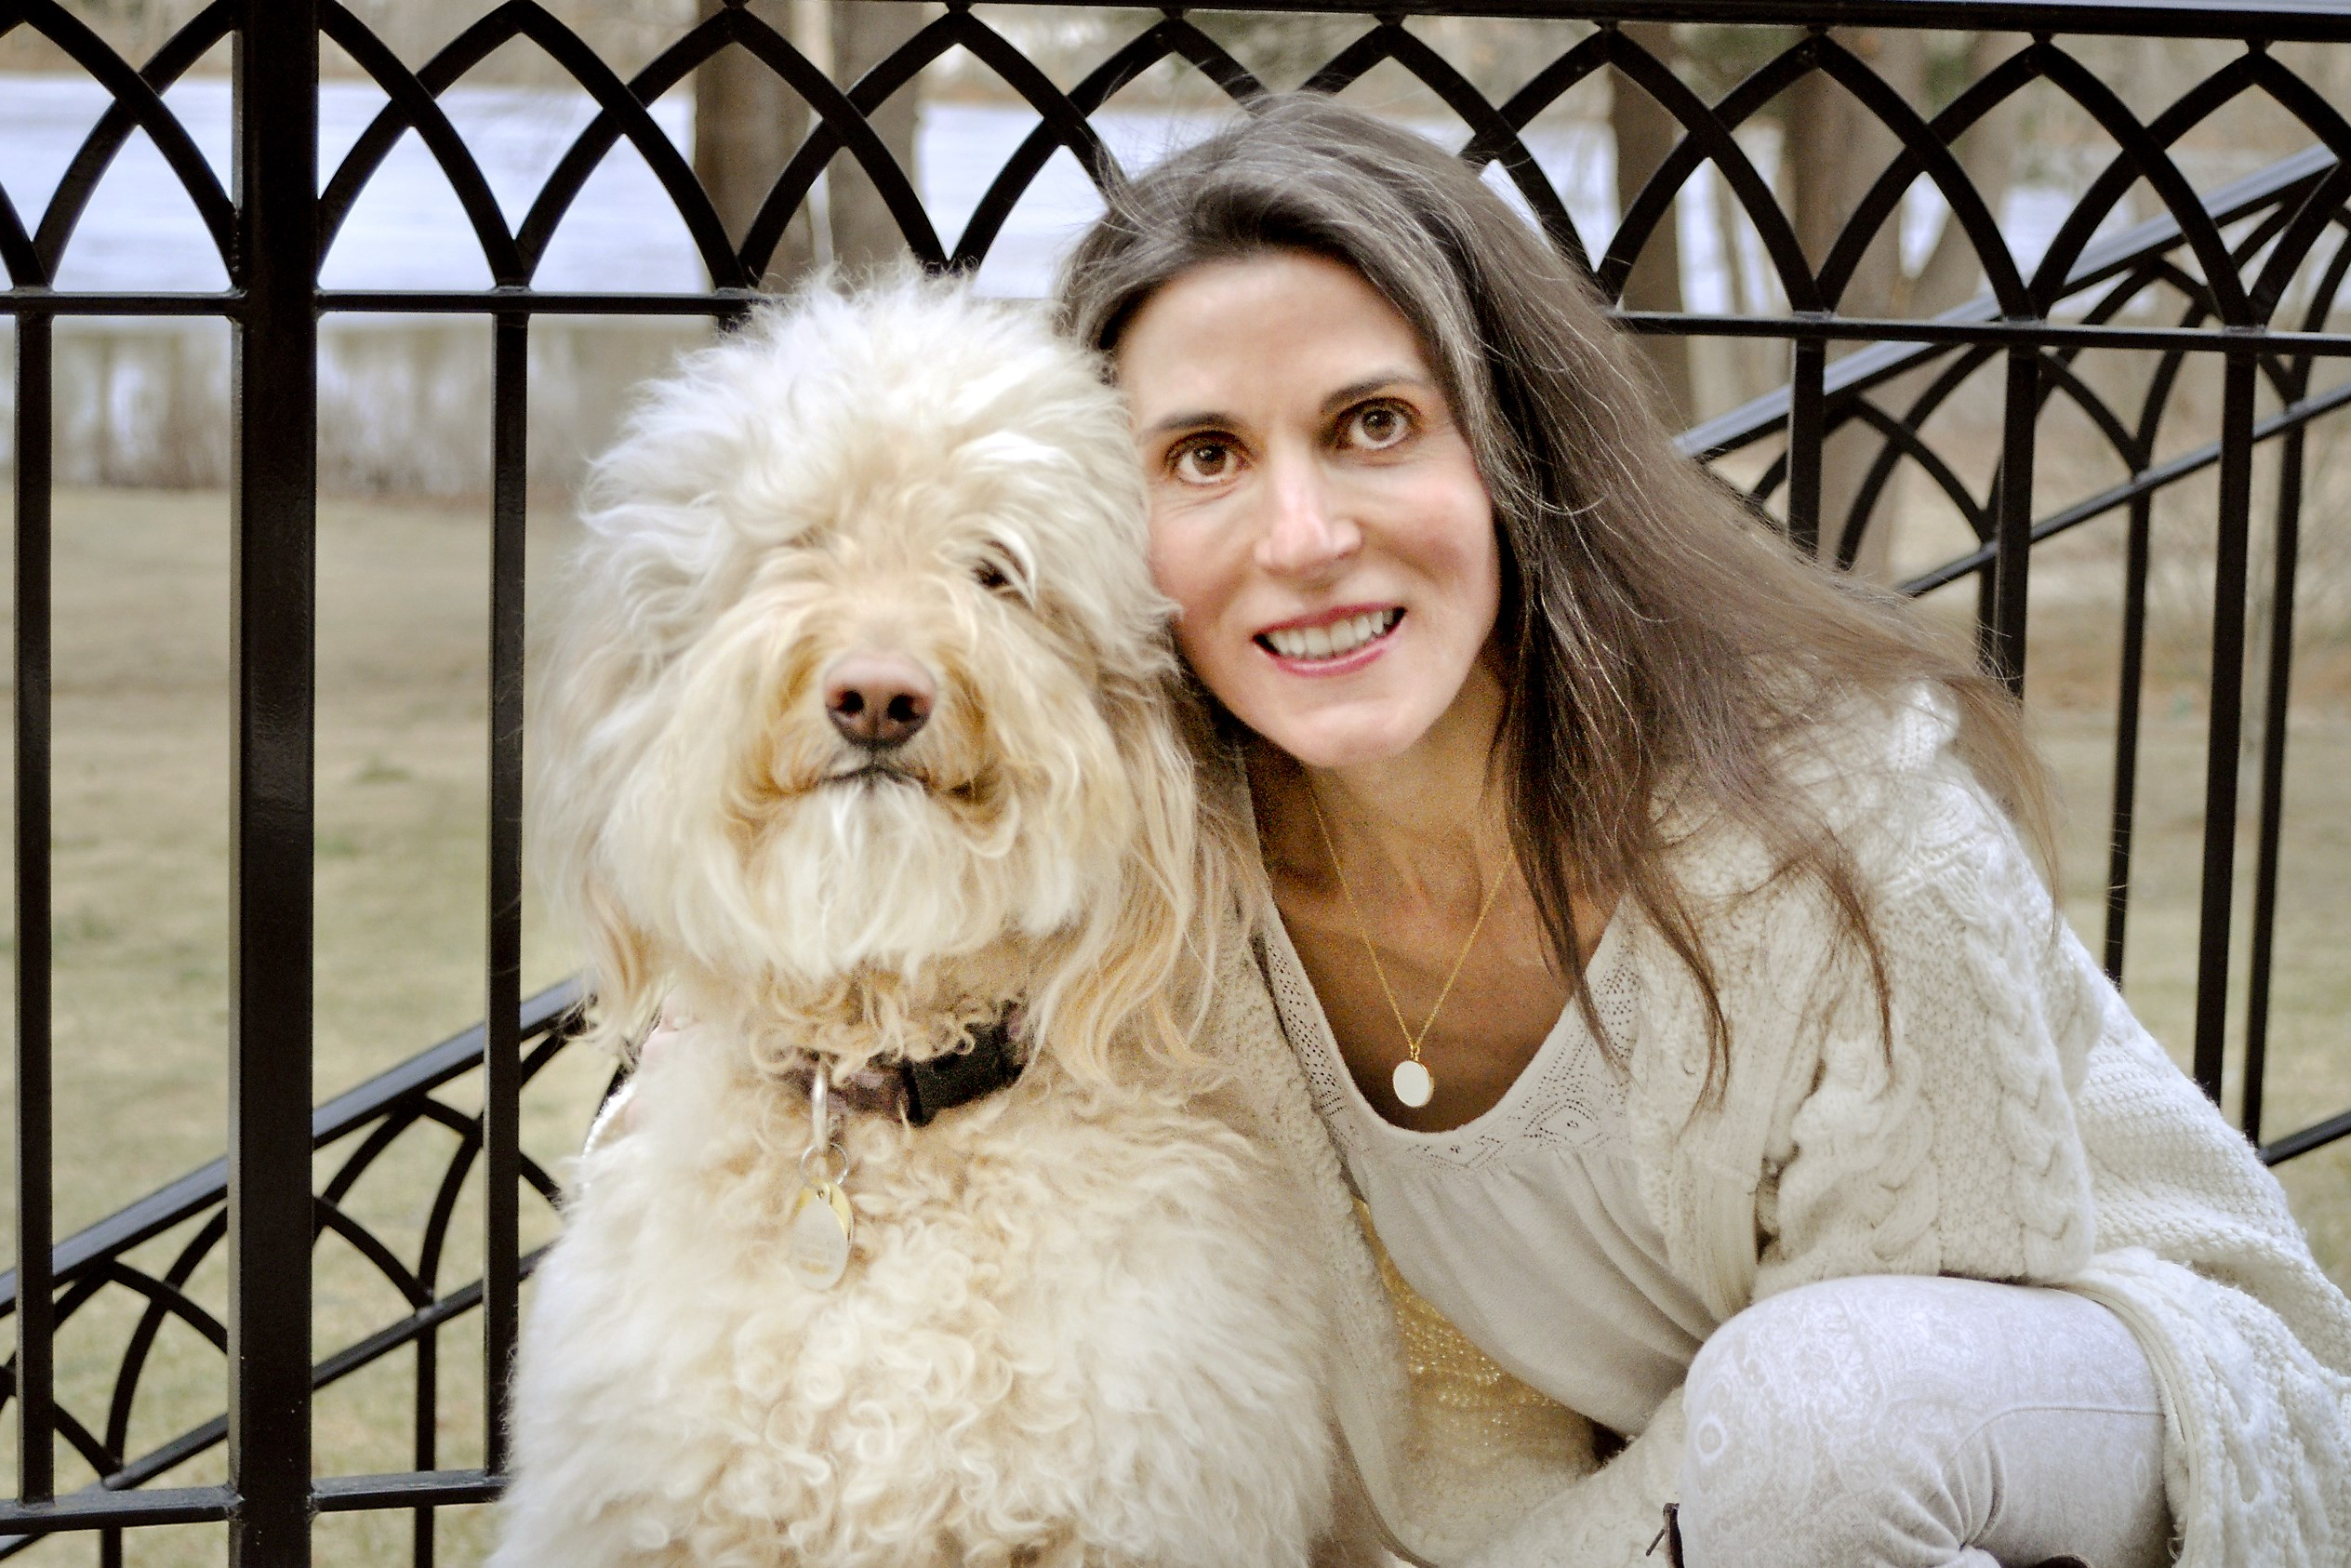 Dr. Elizabeth Pegg Frates and her dog, Reesee. Dog owners are healthier and live longer than people who don't have dogs, she says in a new publication from Harvard Medical School.